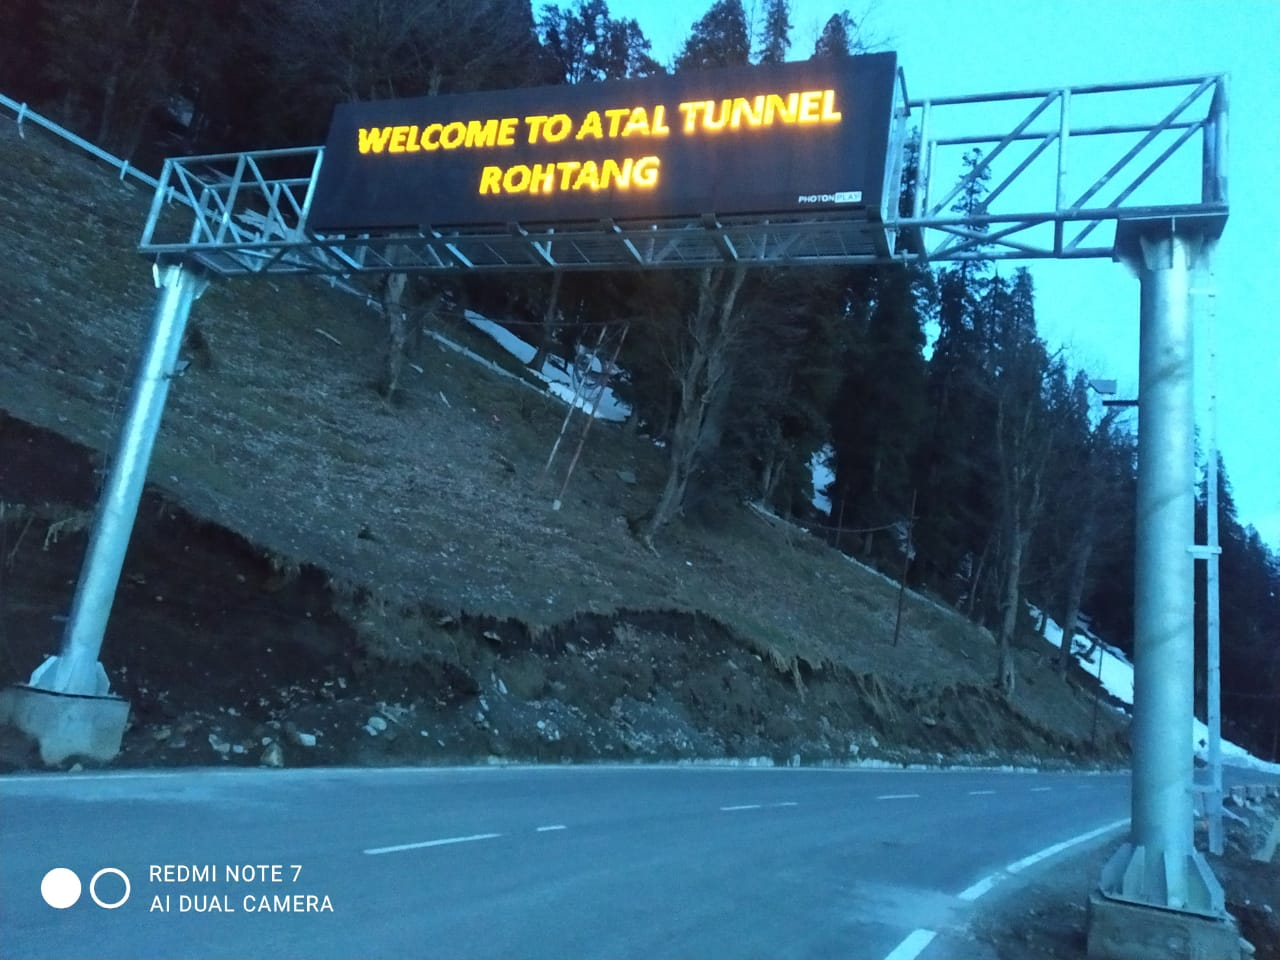 variable message sign installation